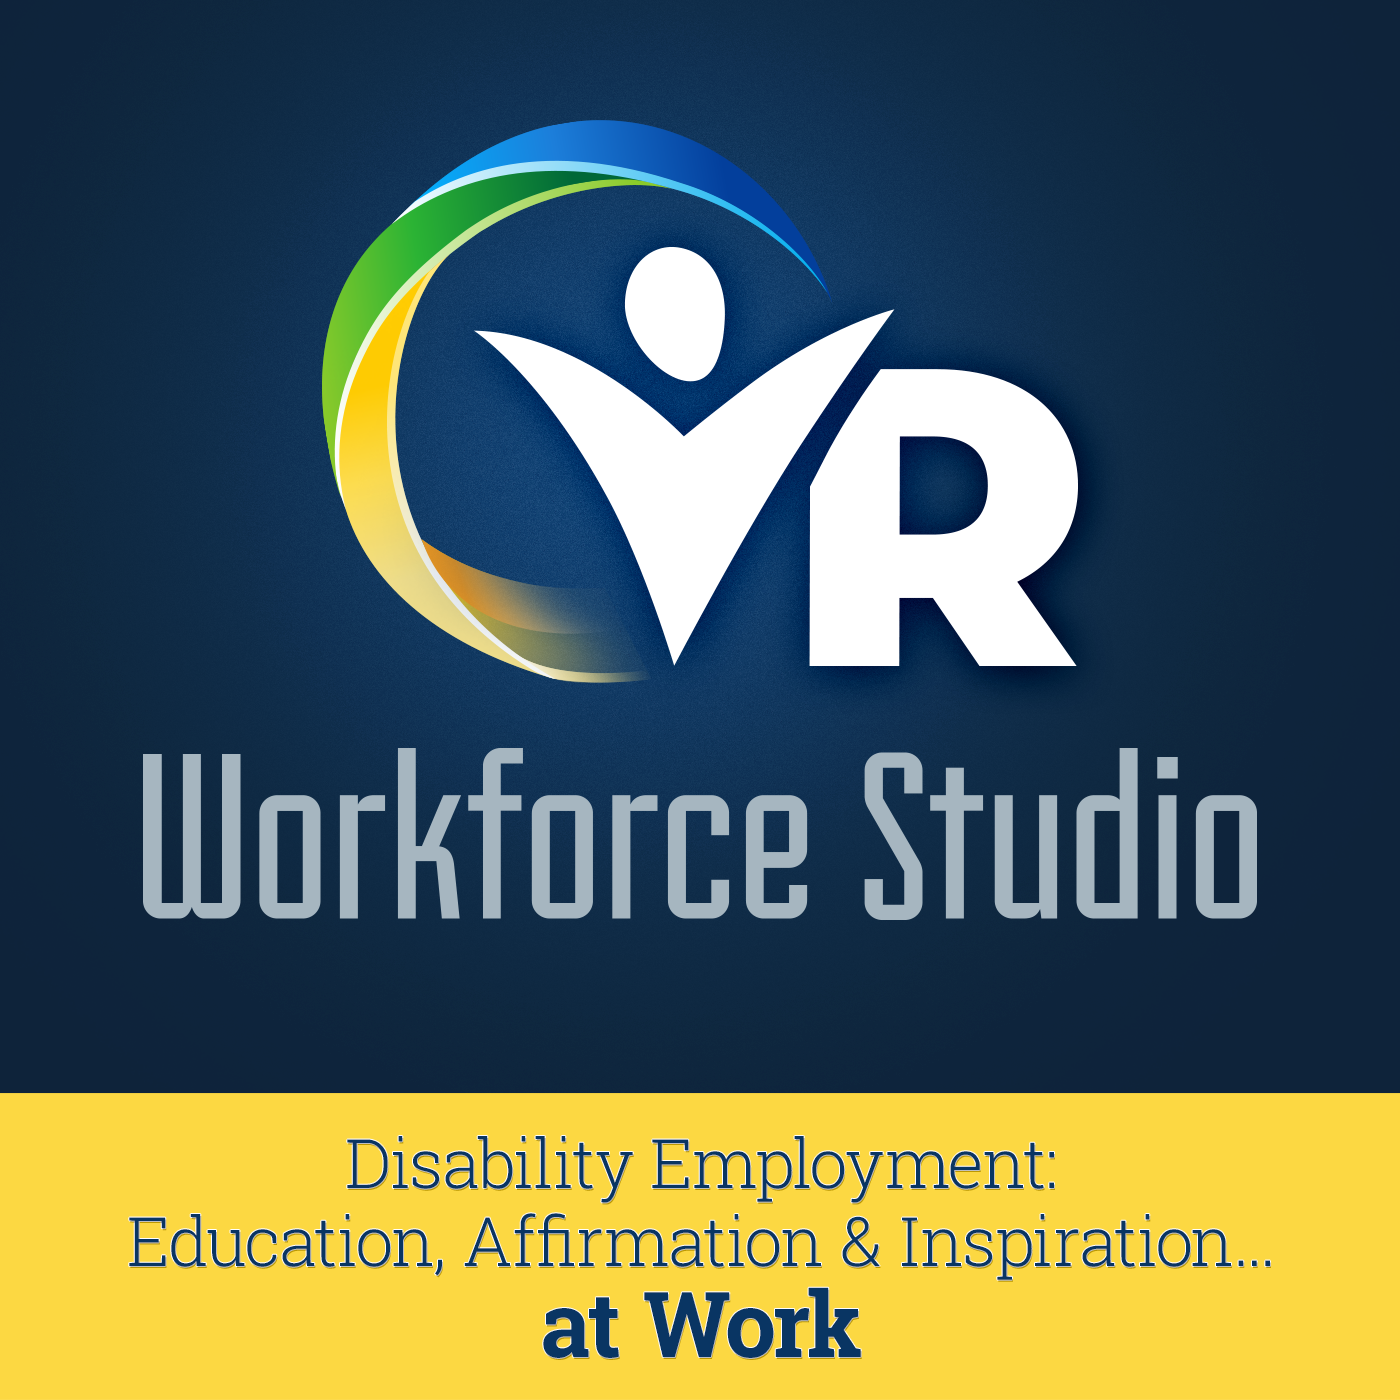 VR Workforce Studio